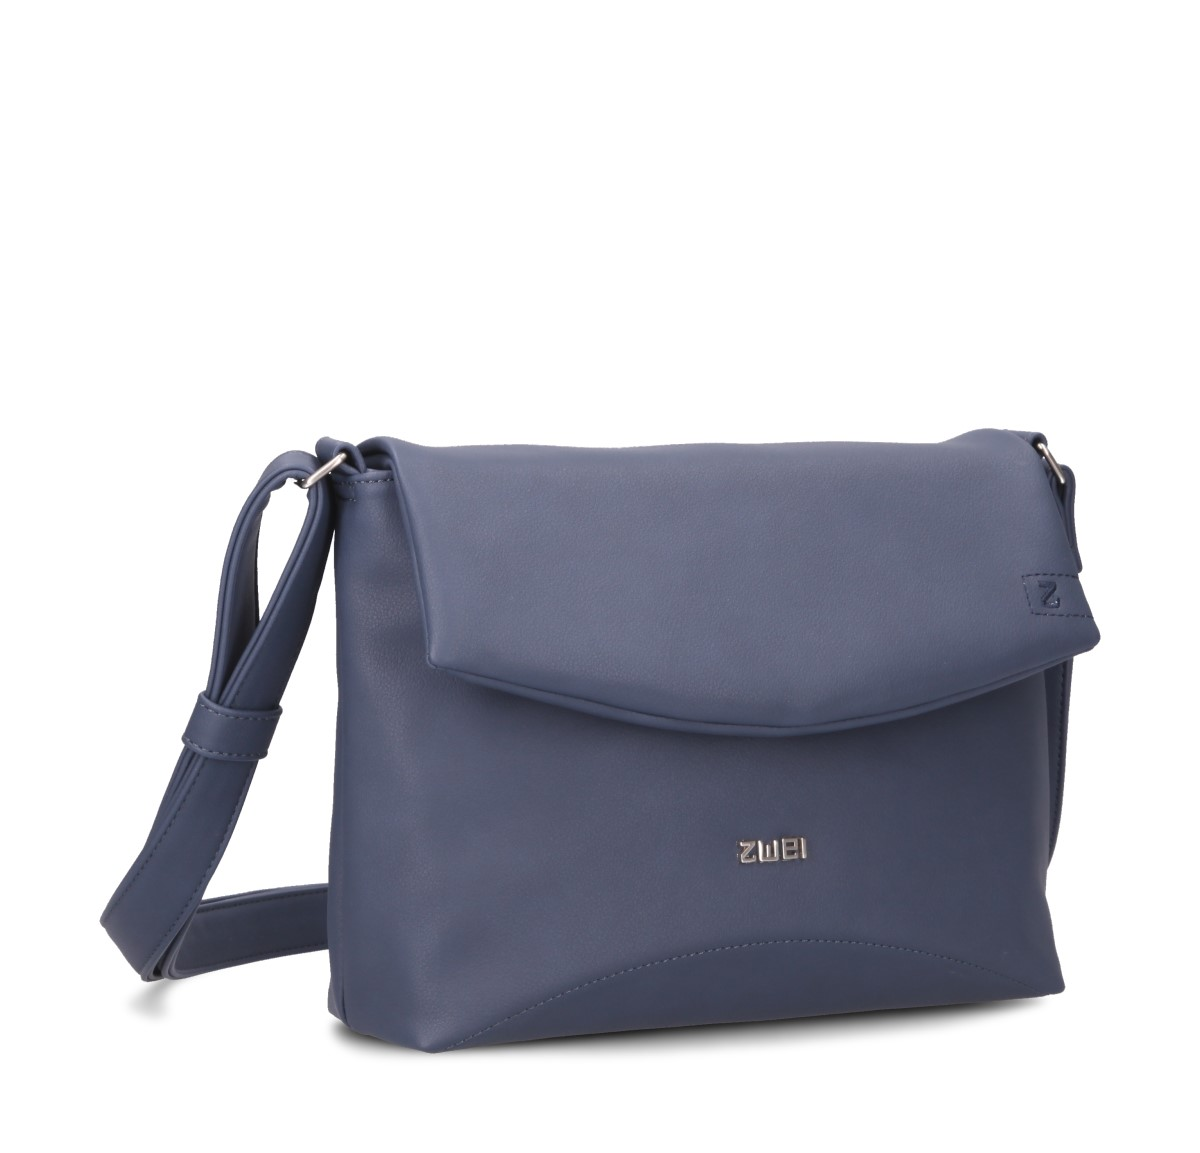 elli - ecoleather small bag